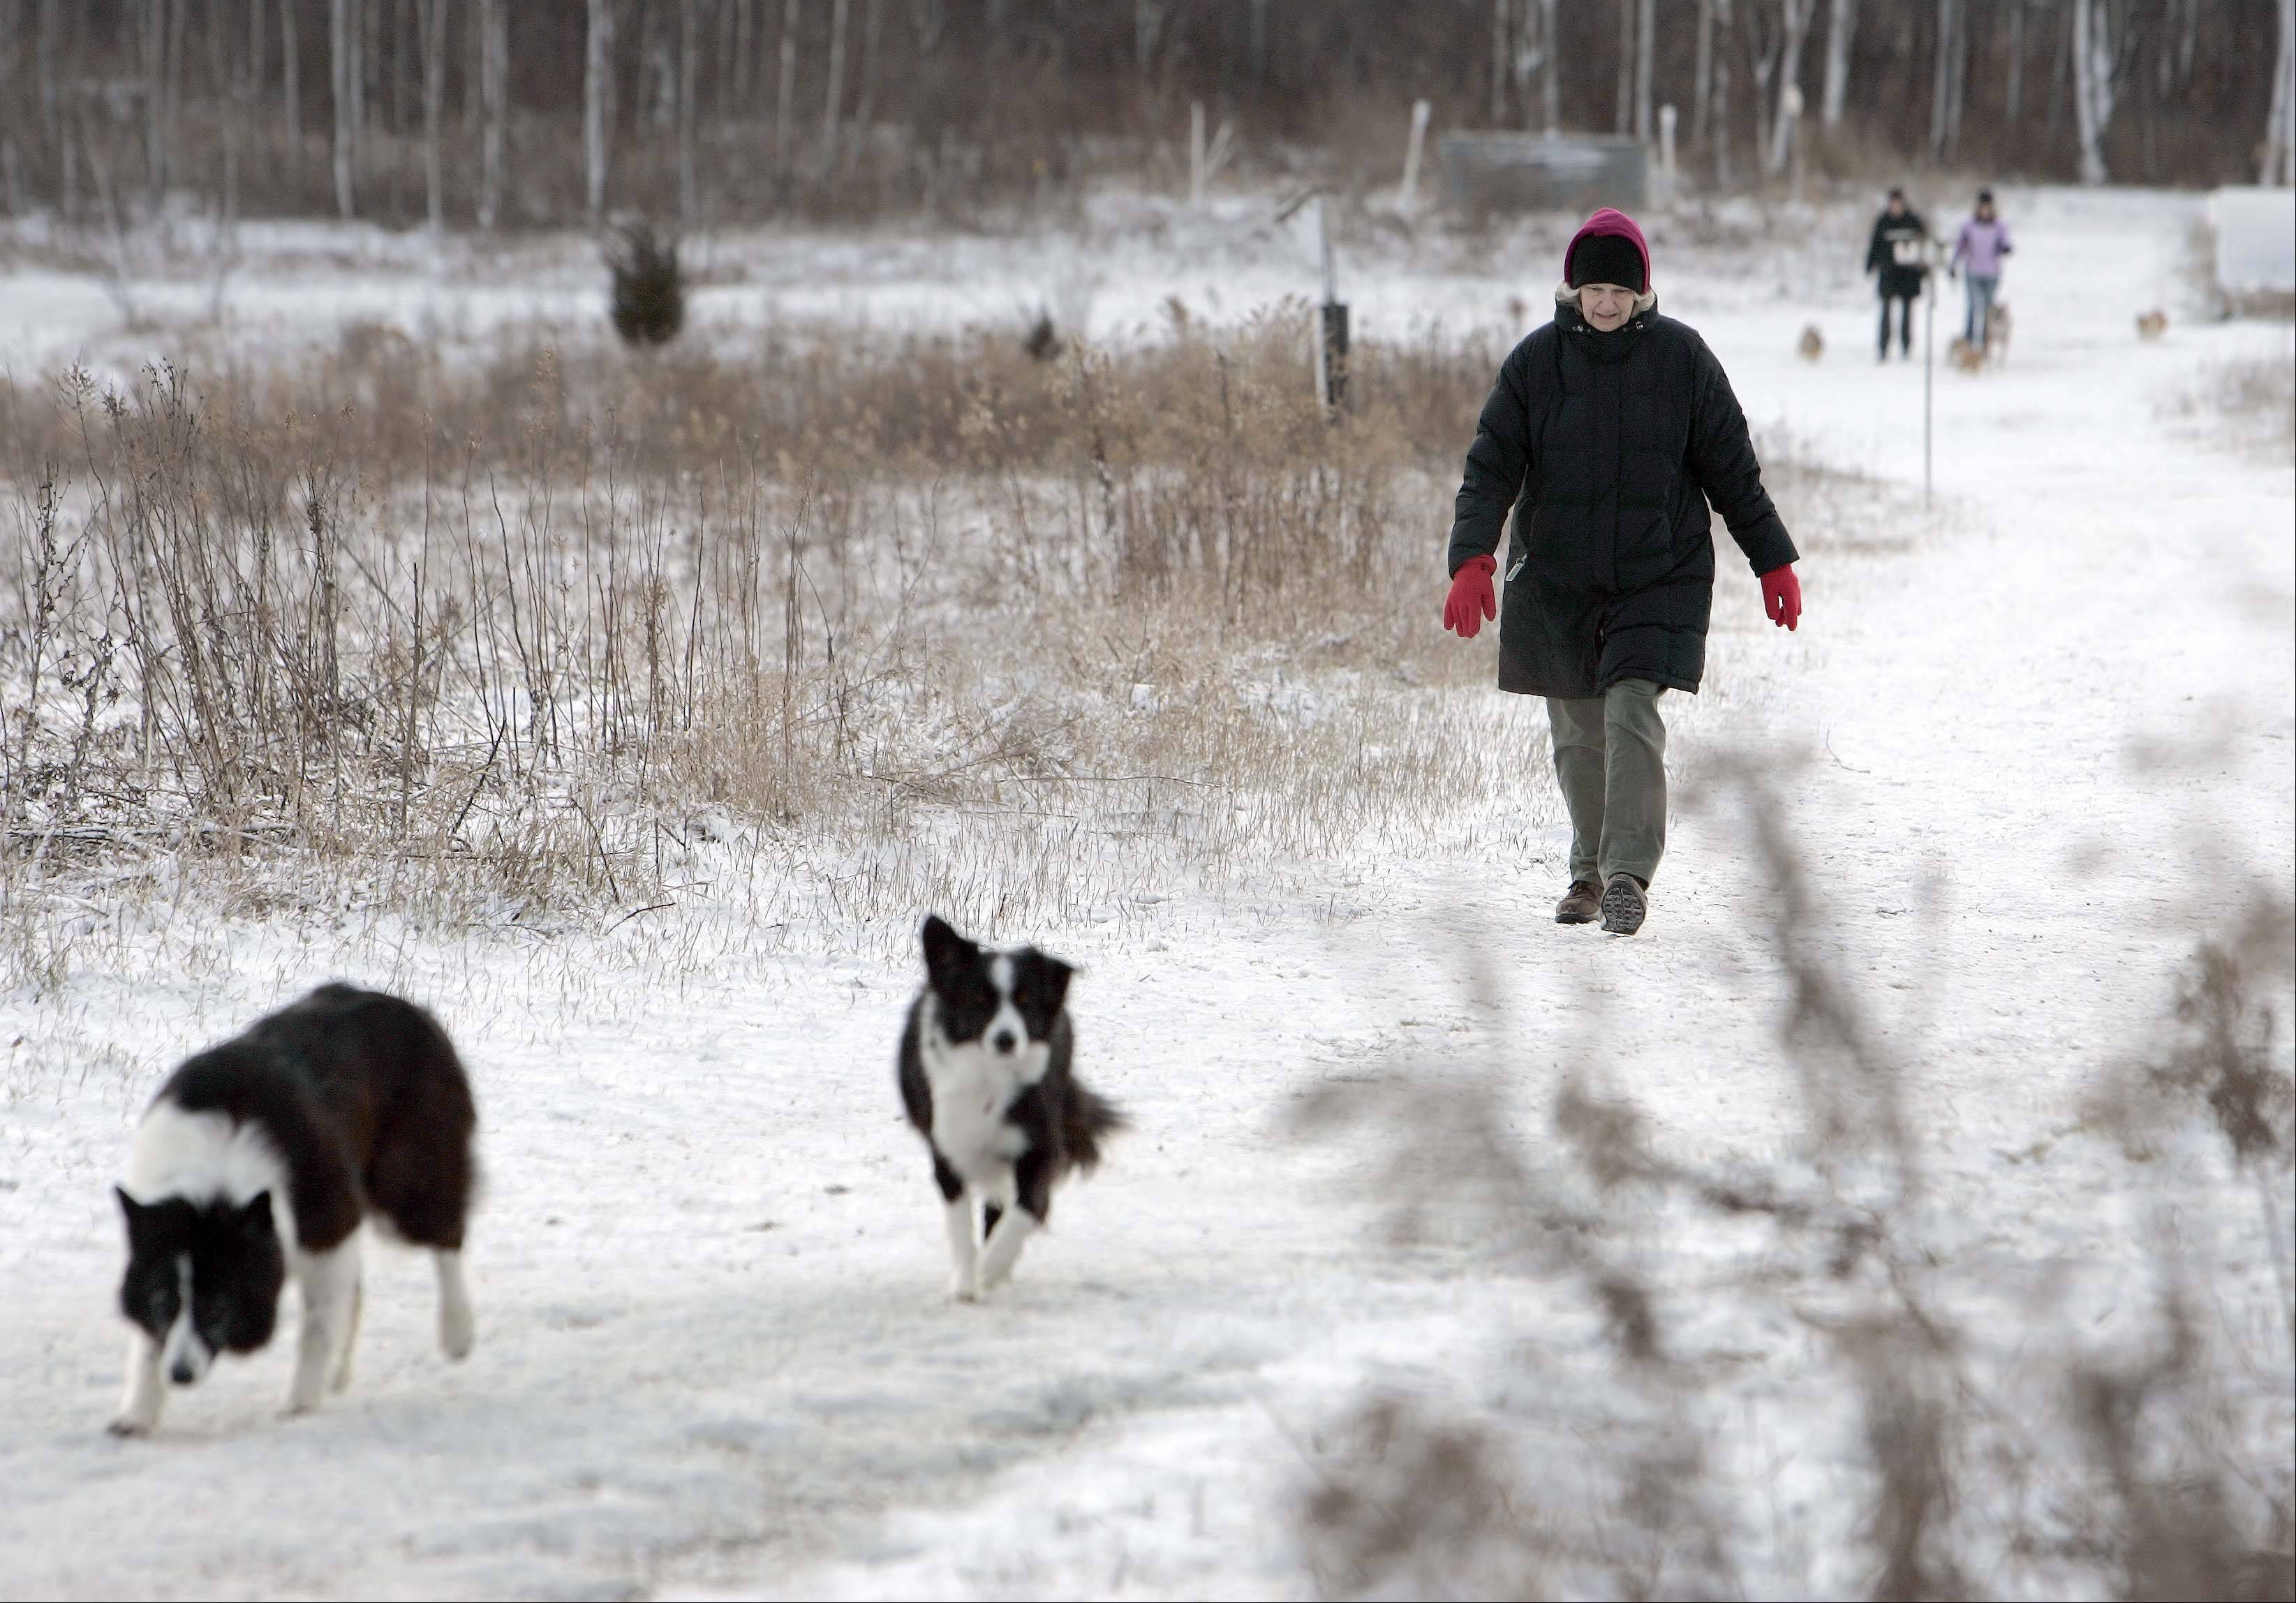 """I was hoping for a little more"" snow remarked Georgia Brown of St. Charles as she enjoyed a brisk walk with her dogs Billie and Seamus Friday at the Fox River Bluff Forest Preserve. ""When the weather is good we come up here"" says Brown who is hoping for more nice weather to make life easy for Christmas travelers. The first measurable snowfall for the Fox Valley resulted in little more than half an inch in most places."